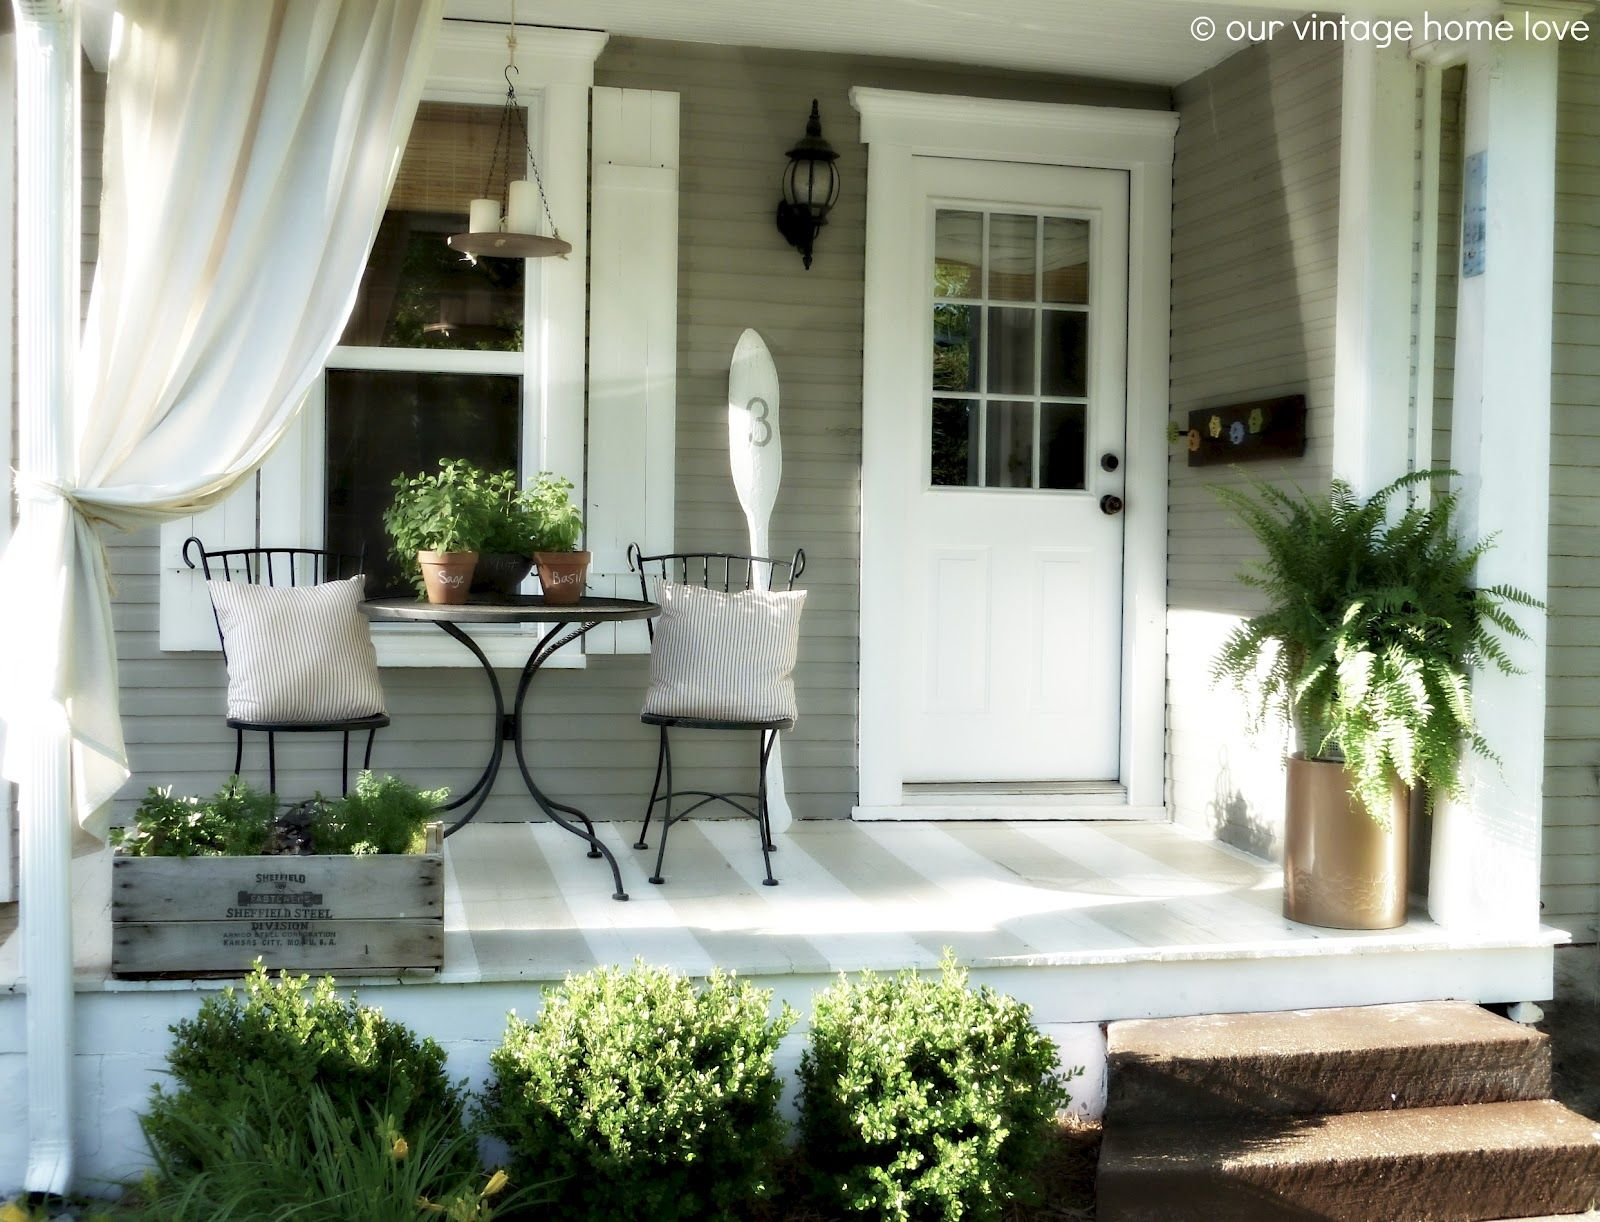 Decorate front door for summer side porch ideas for Front veranda decorating ideas